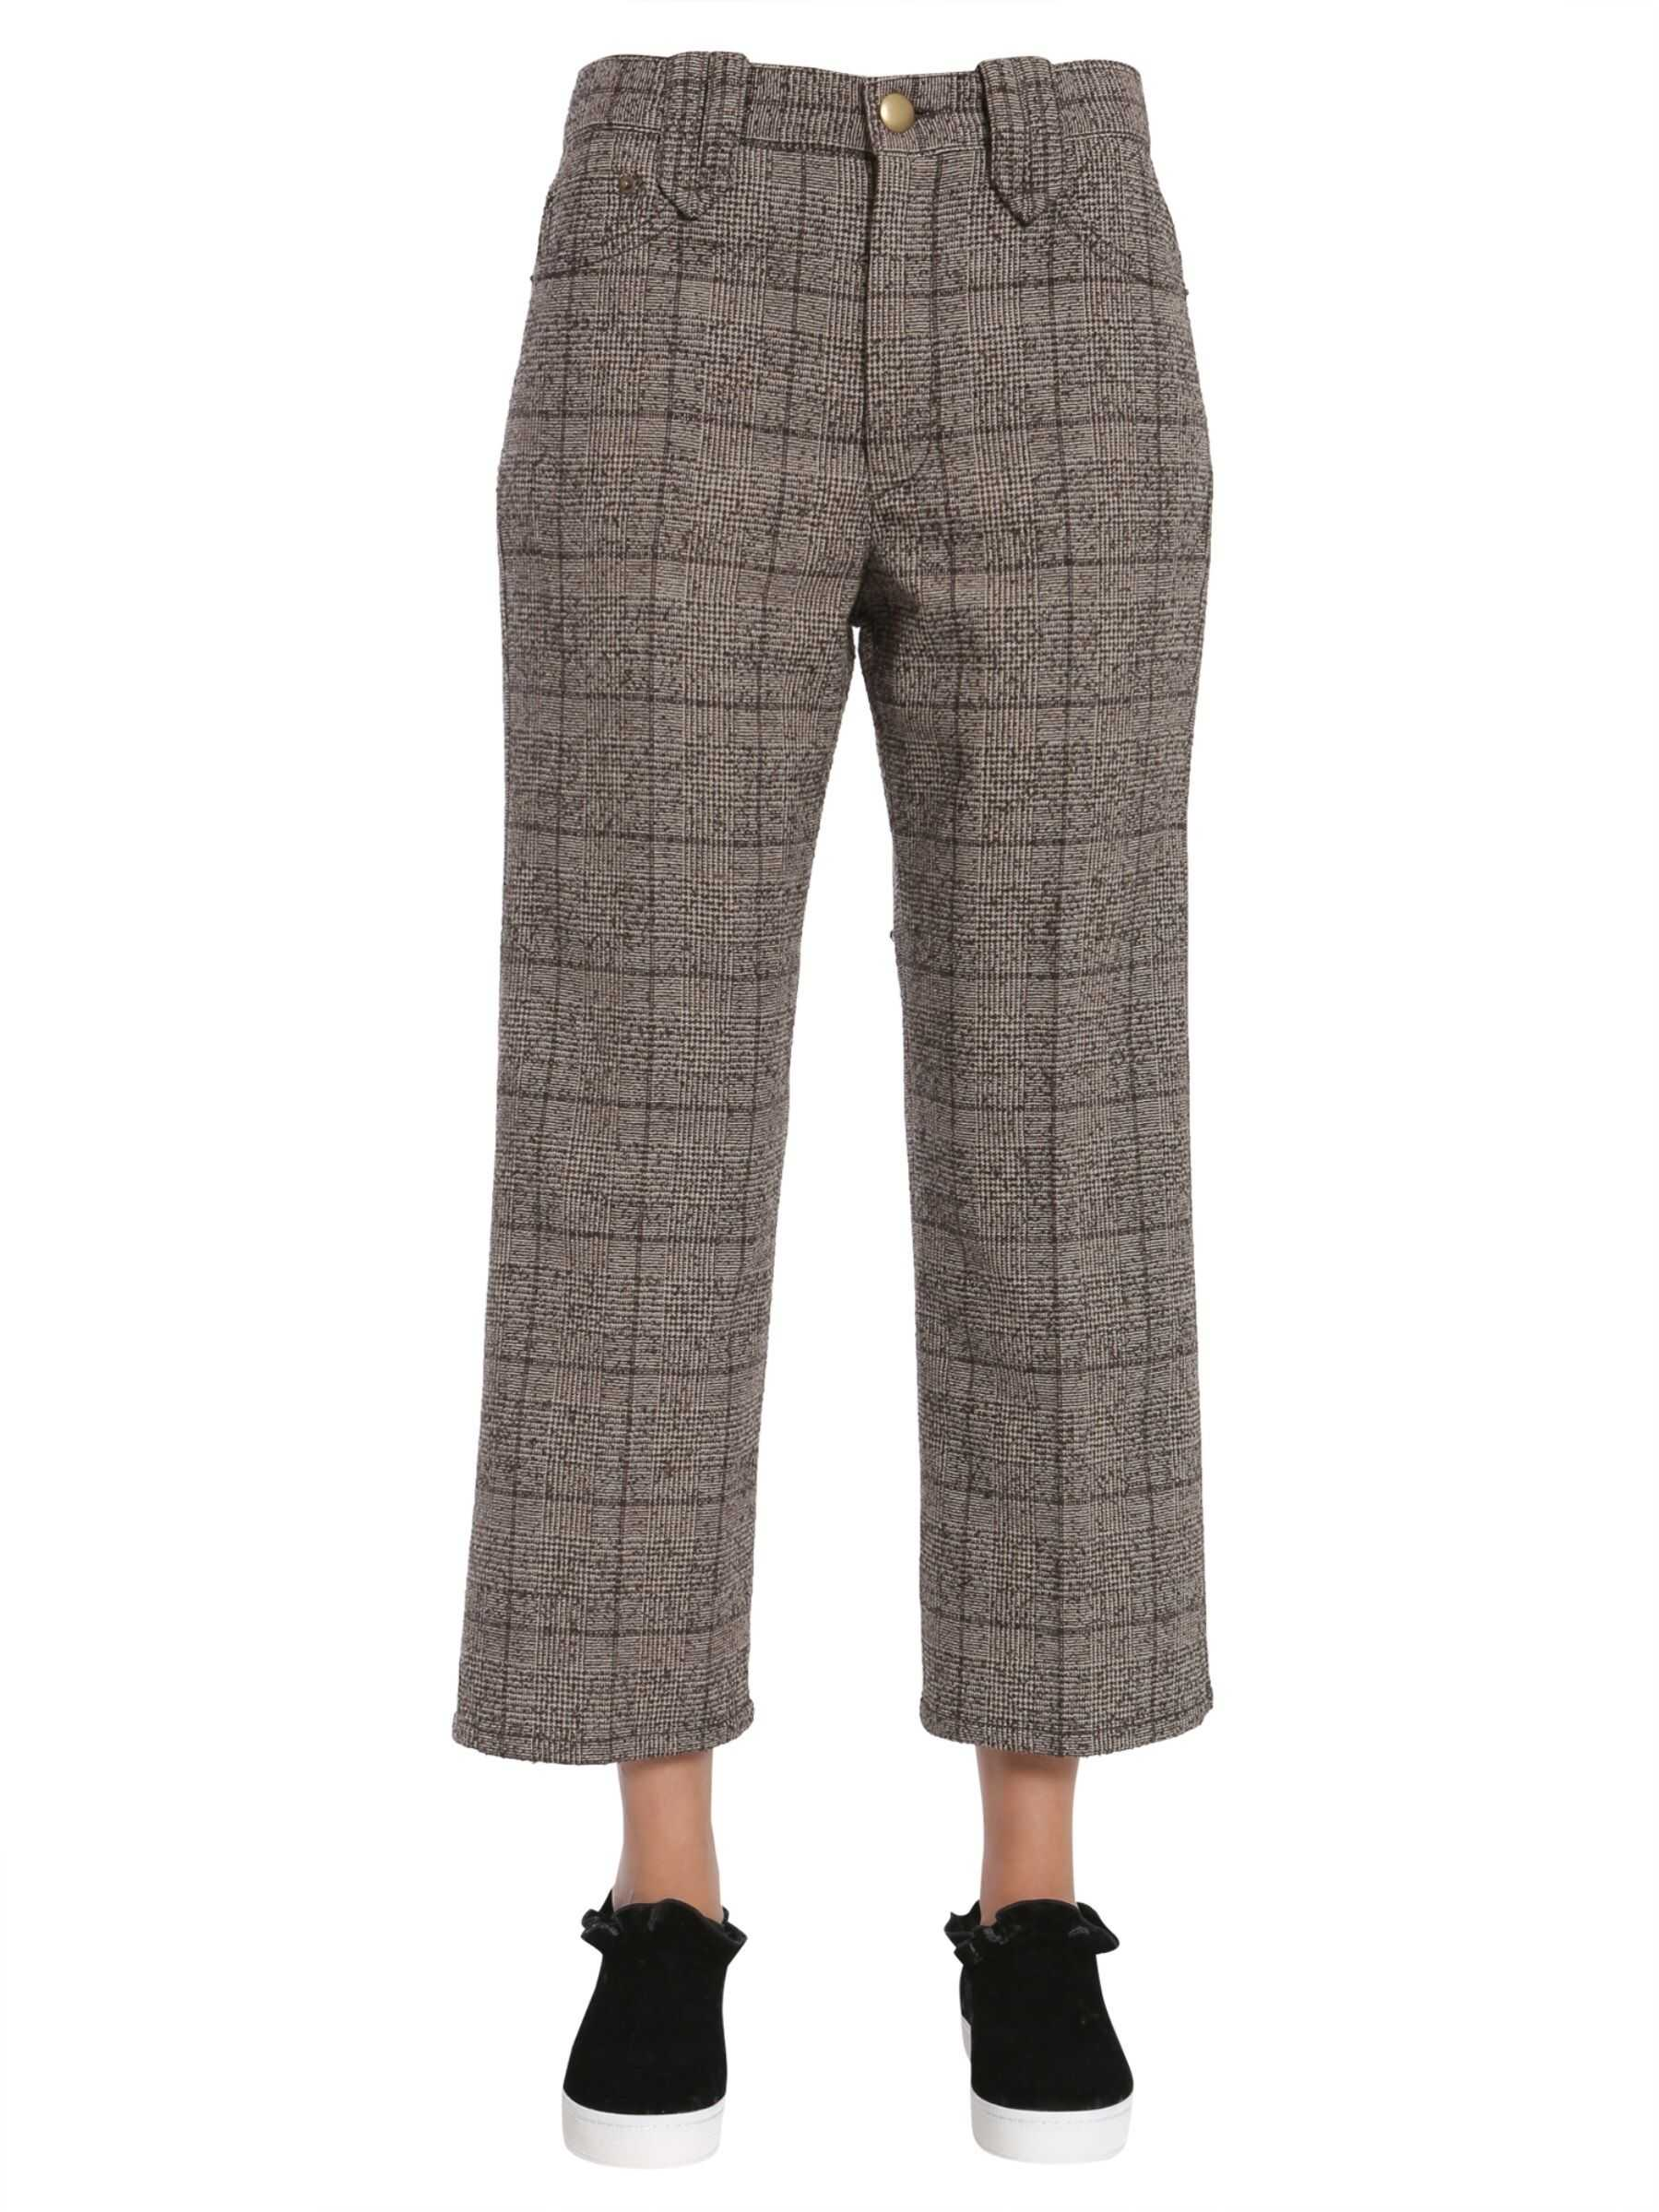 Marc Jacobs Cropped Trousers MULTICOLOUR